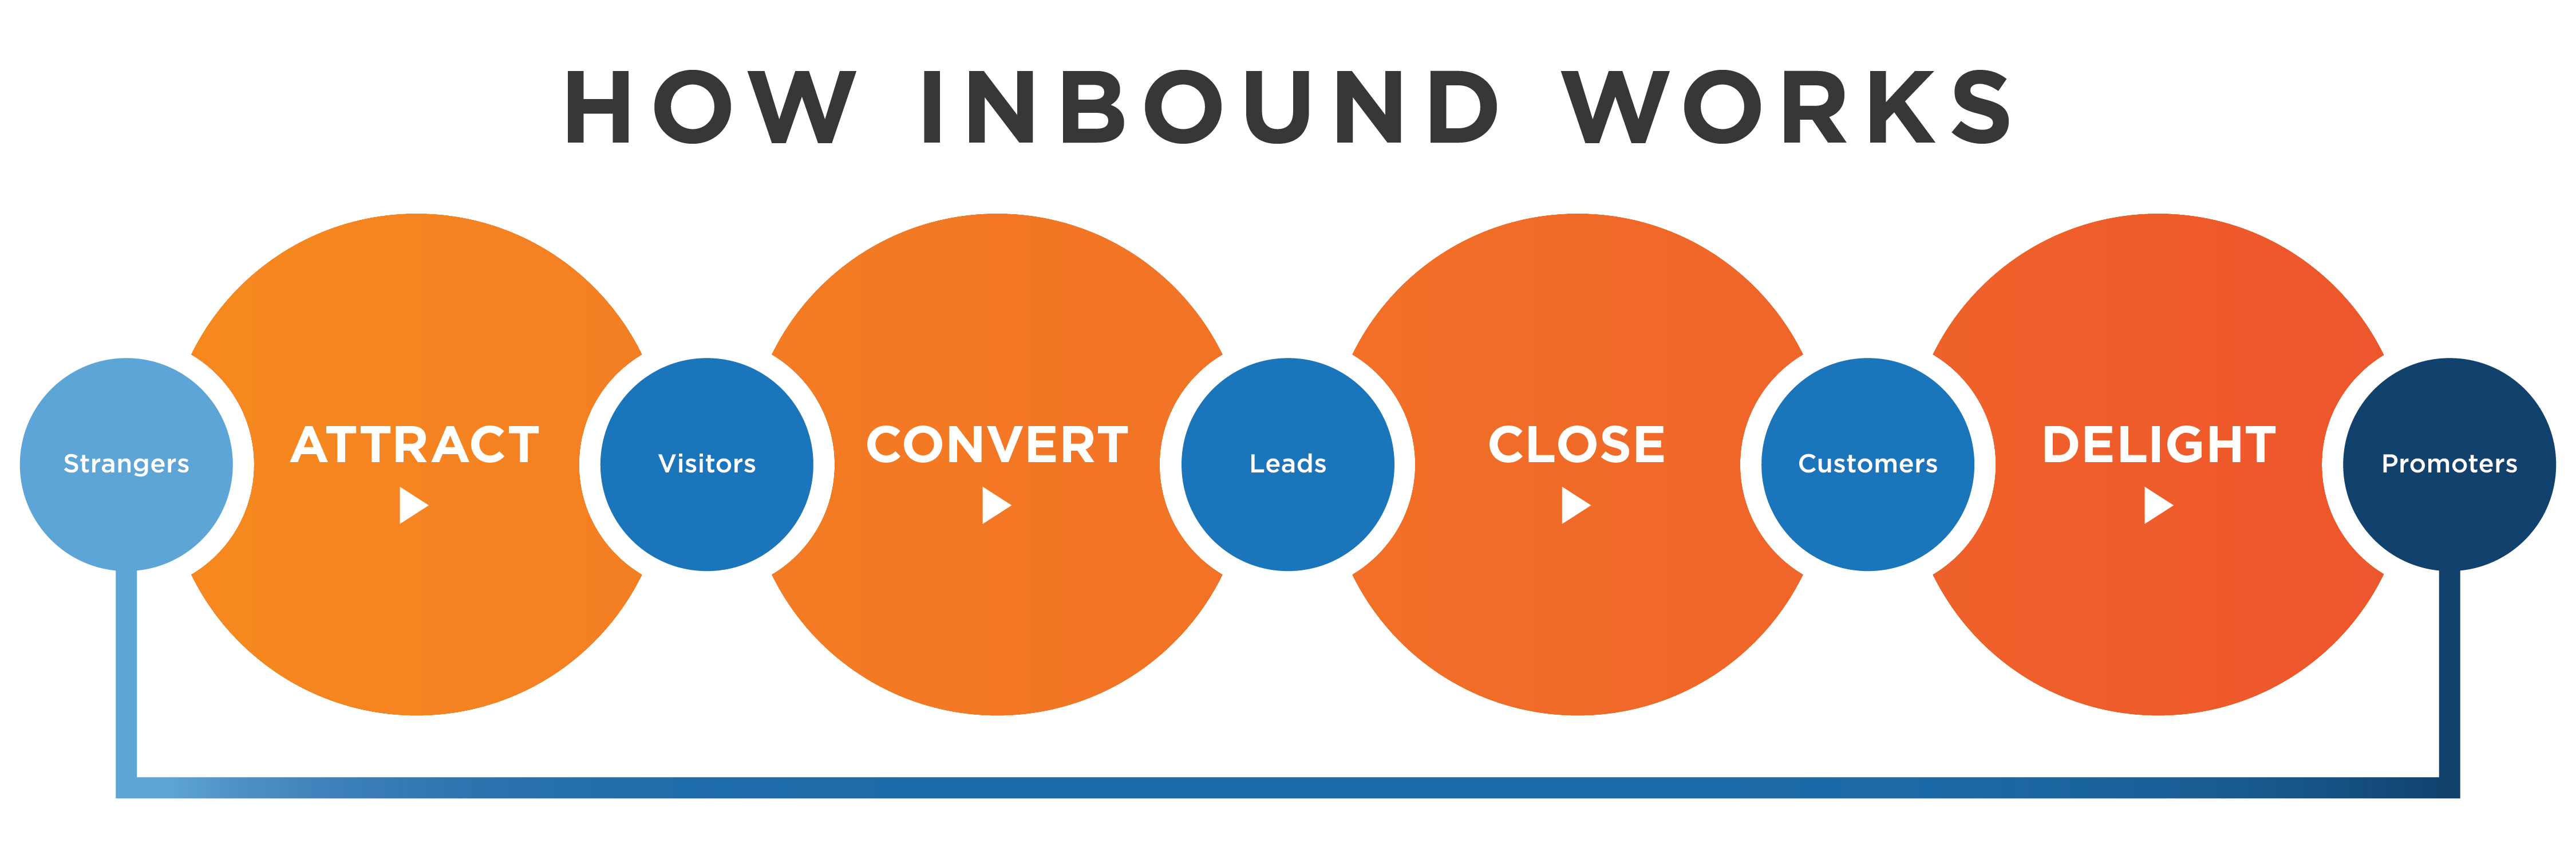 inbound marketing description